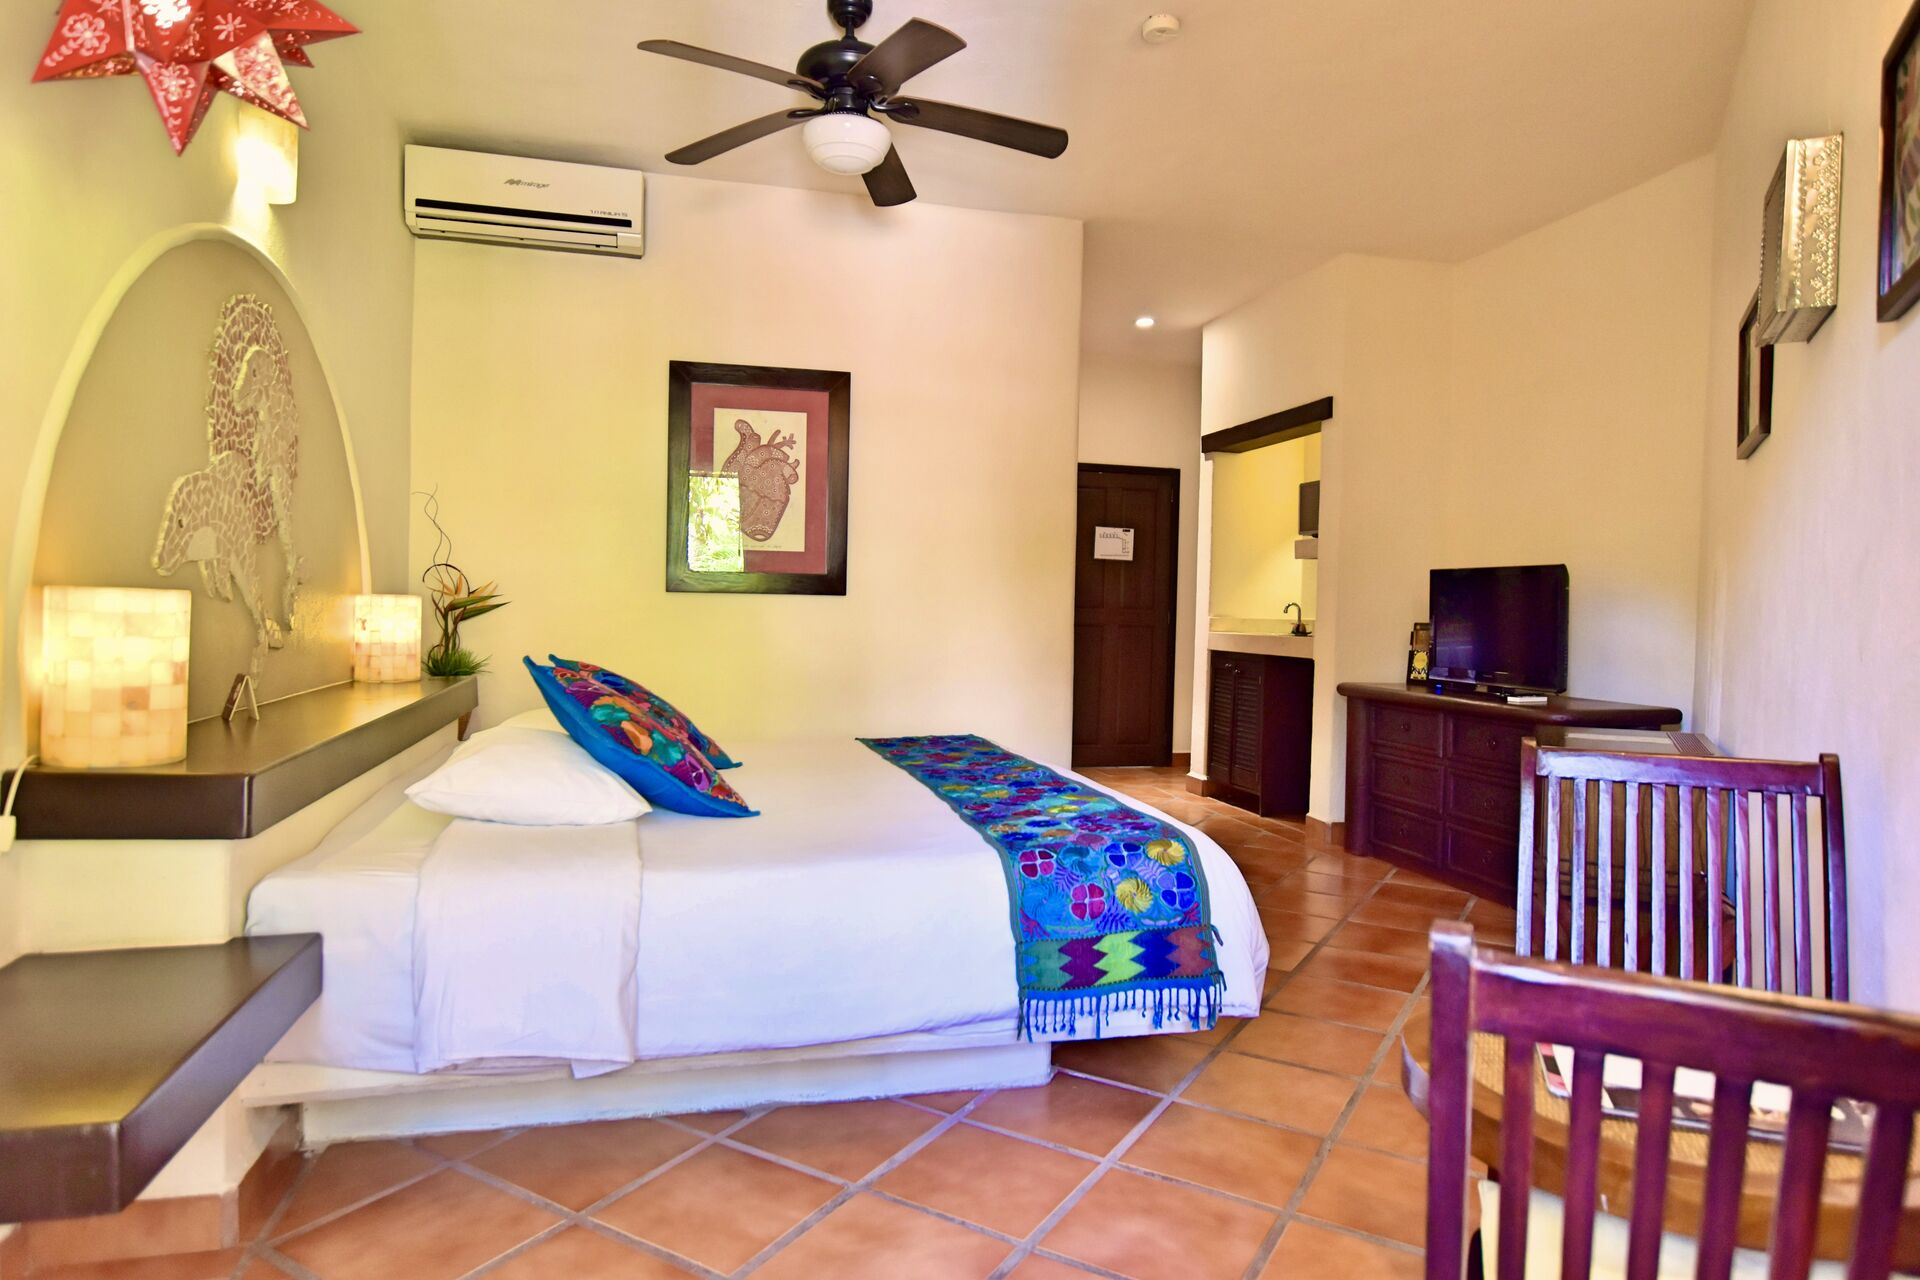 King Size Bed and comfortable room